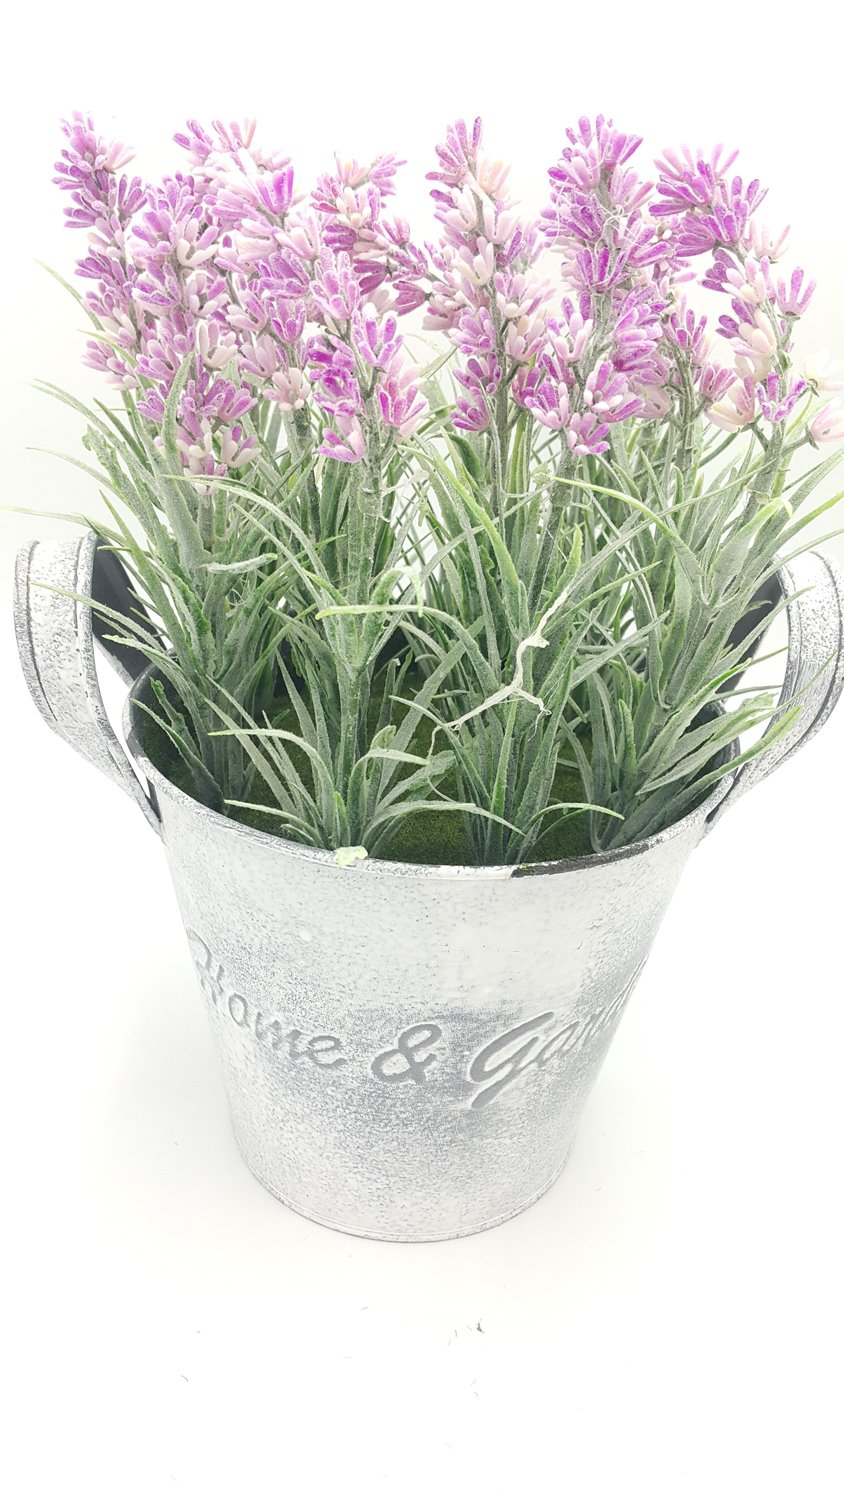 LODESTAR-Artificial-Fake-Lavender-Flower-Bouquet-in-Rustic-Can-Metal-Basket-Indoor-Outdoor-Home-Decoration